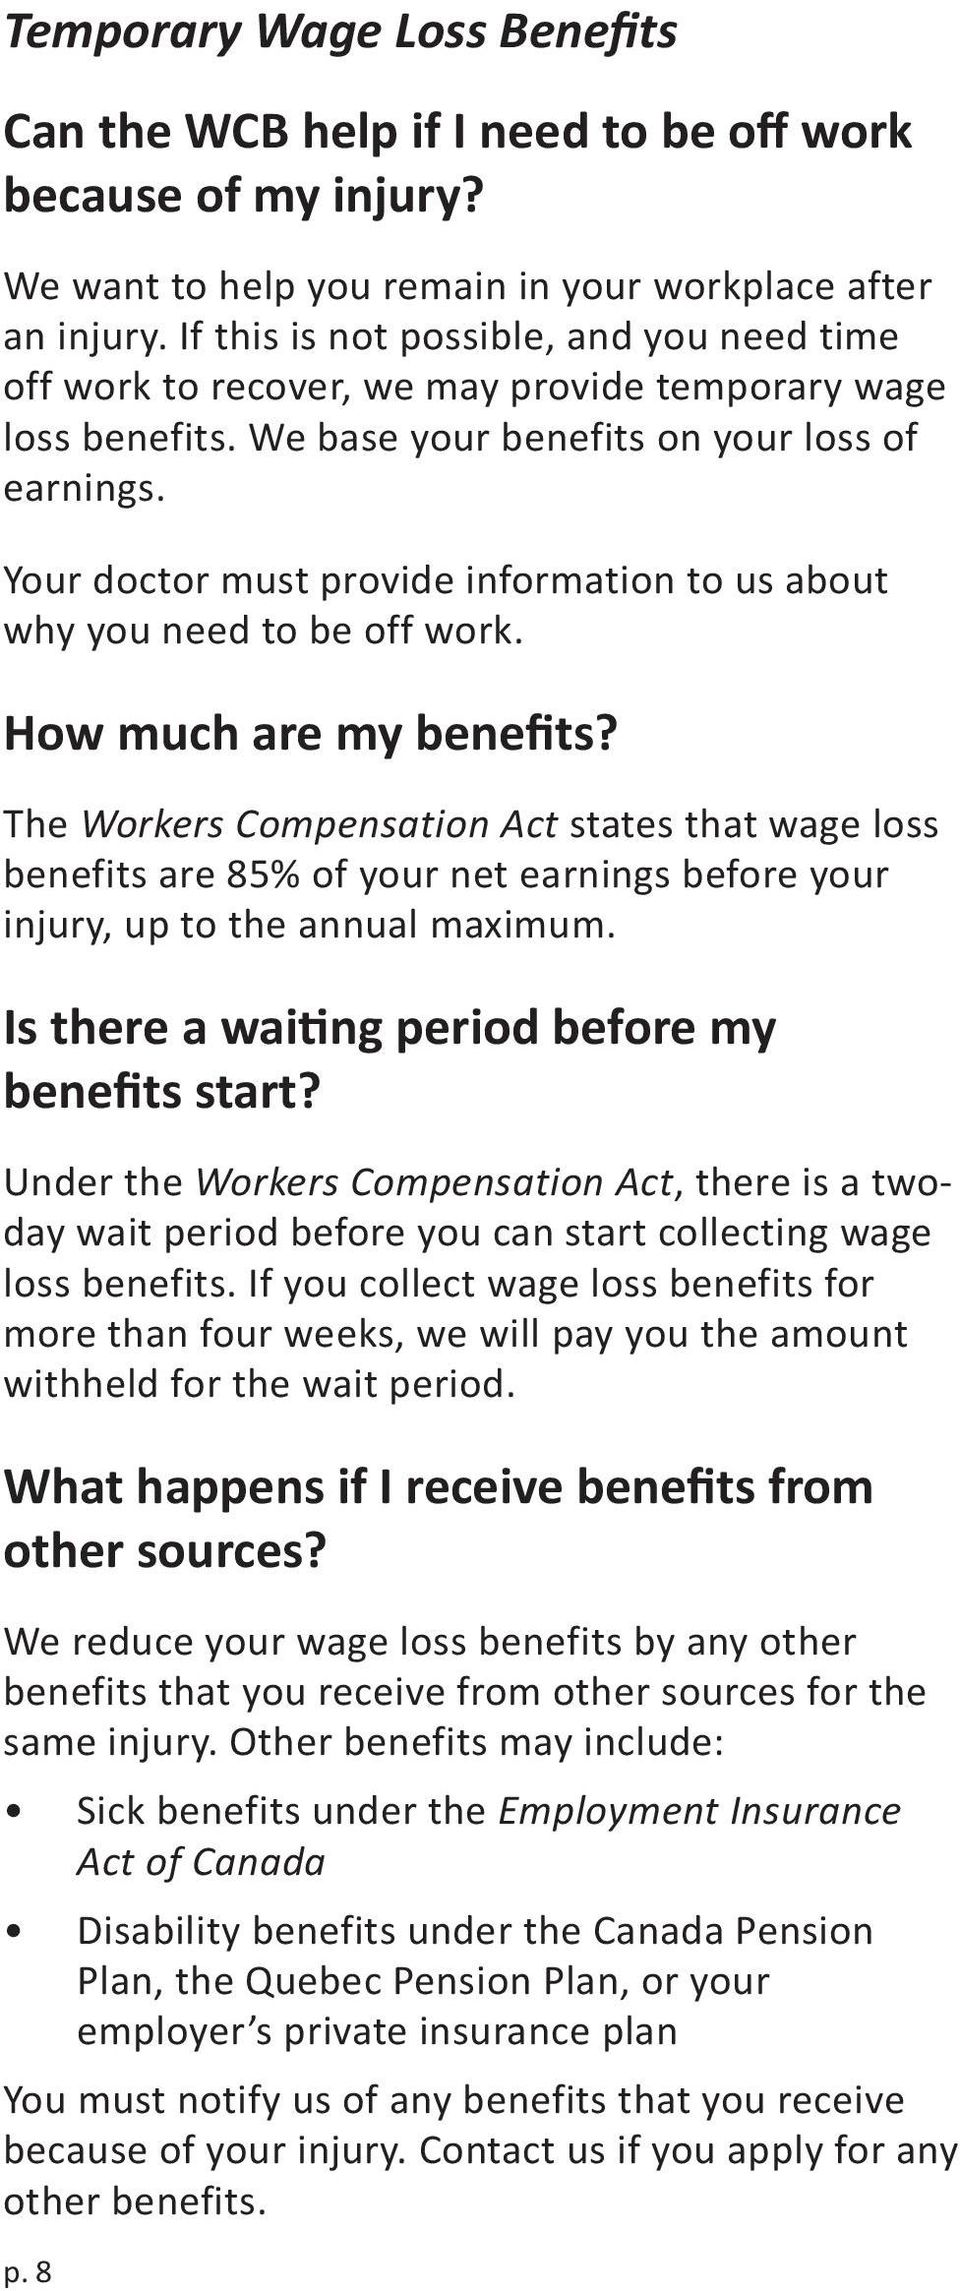 Your doctor must provide information to us about why you need to be off work. How much are my benefits?